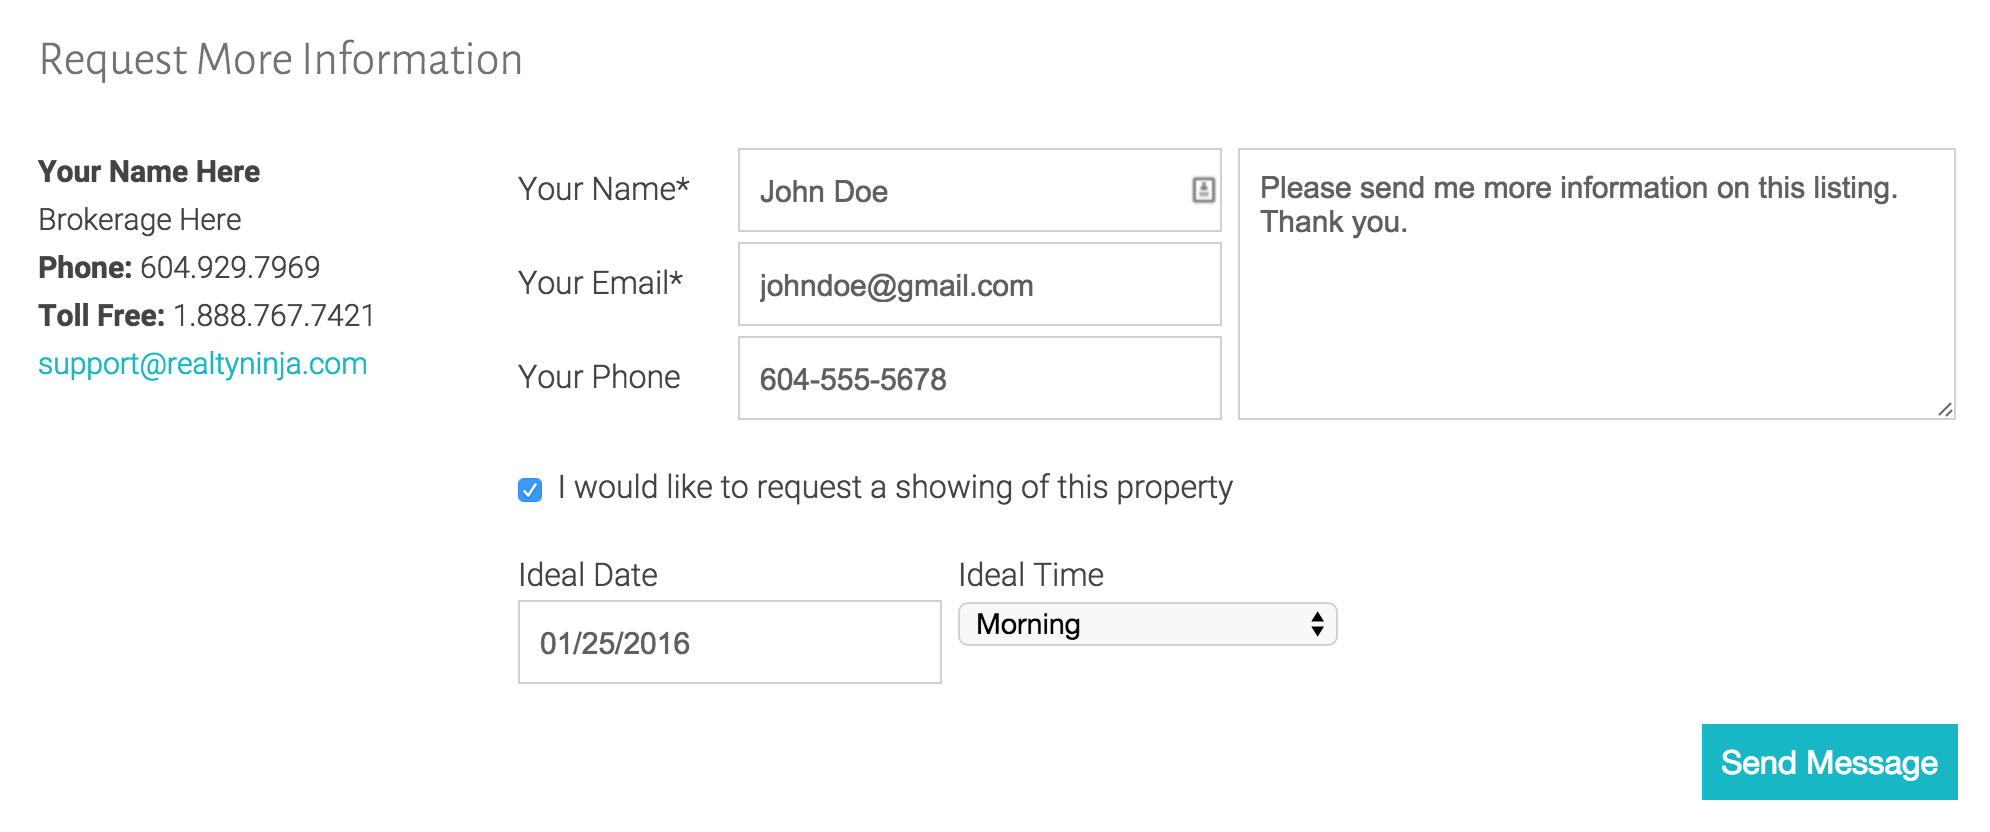 Lead Capture Form at the Bottom of all Listings